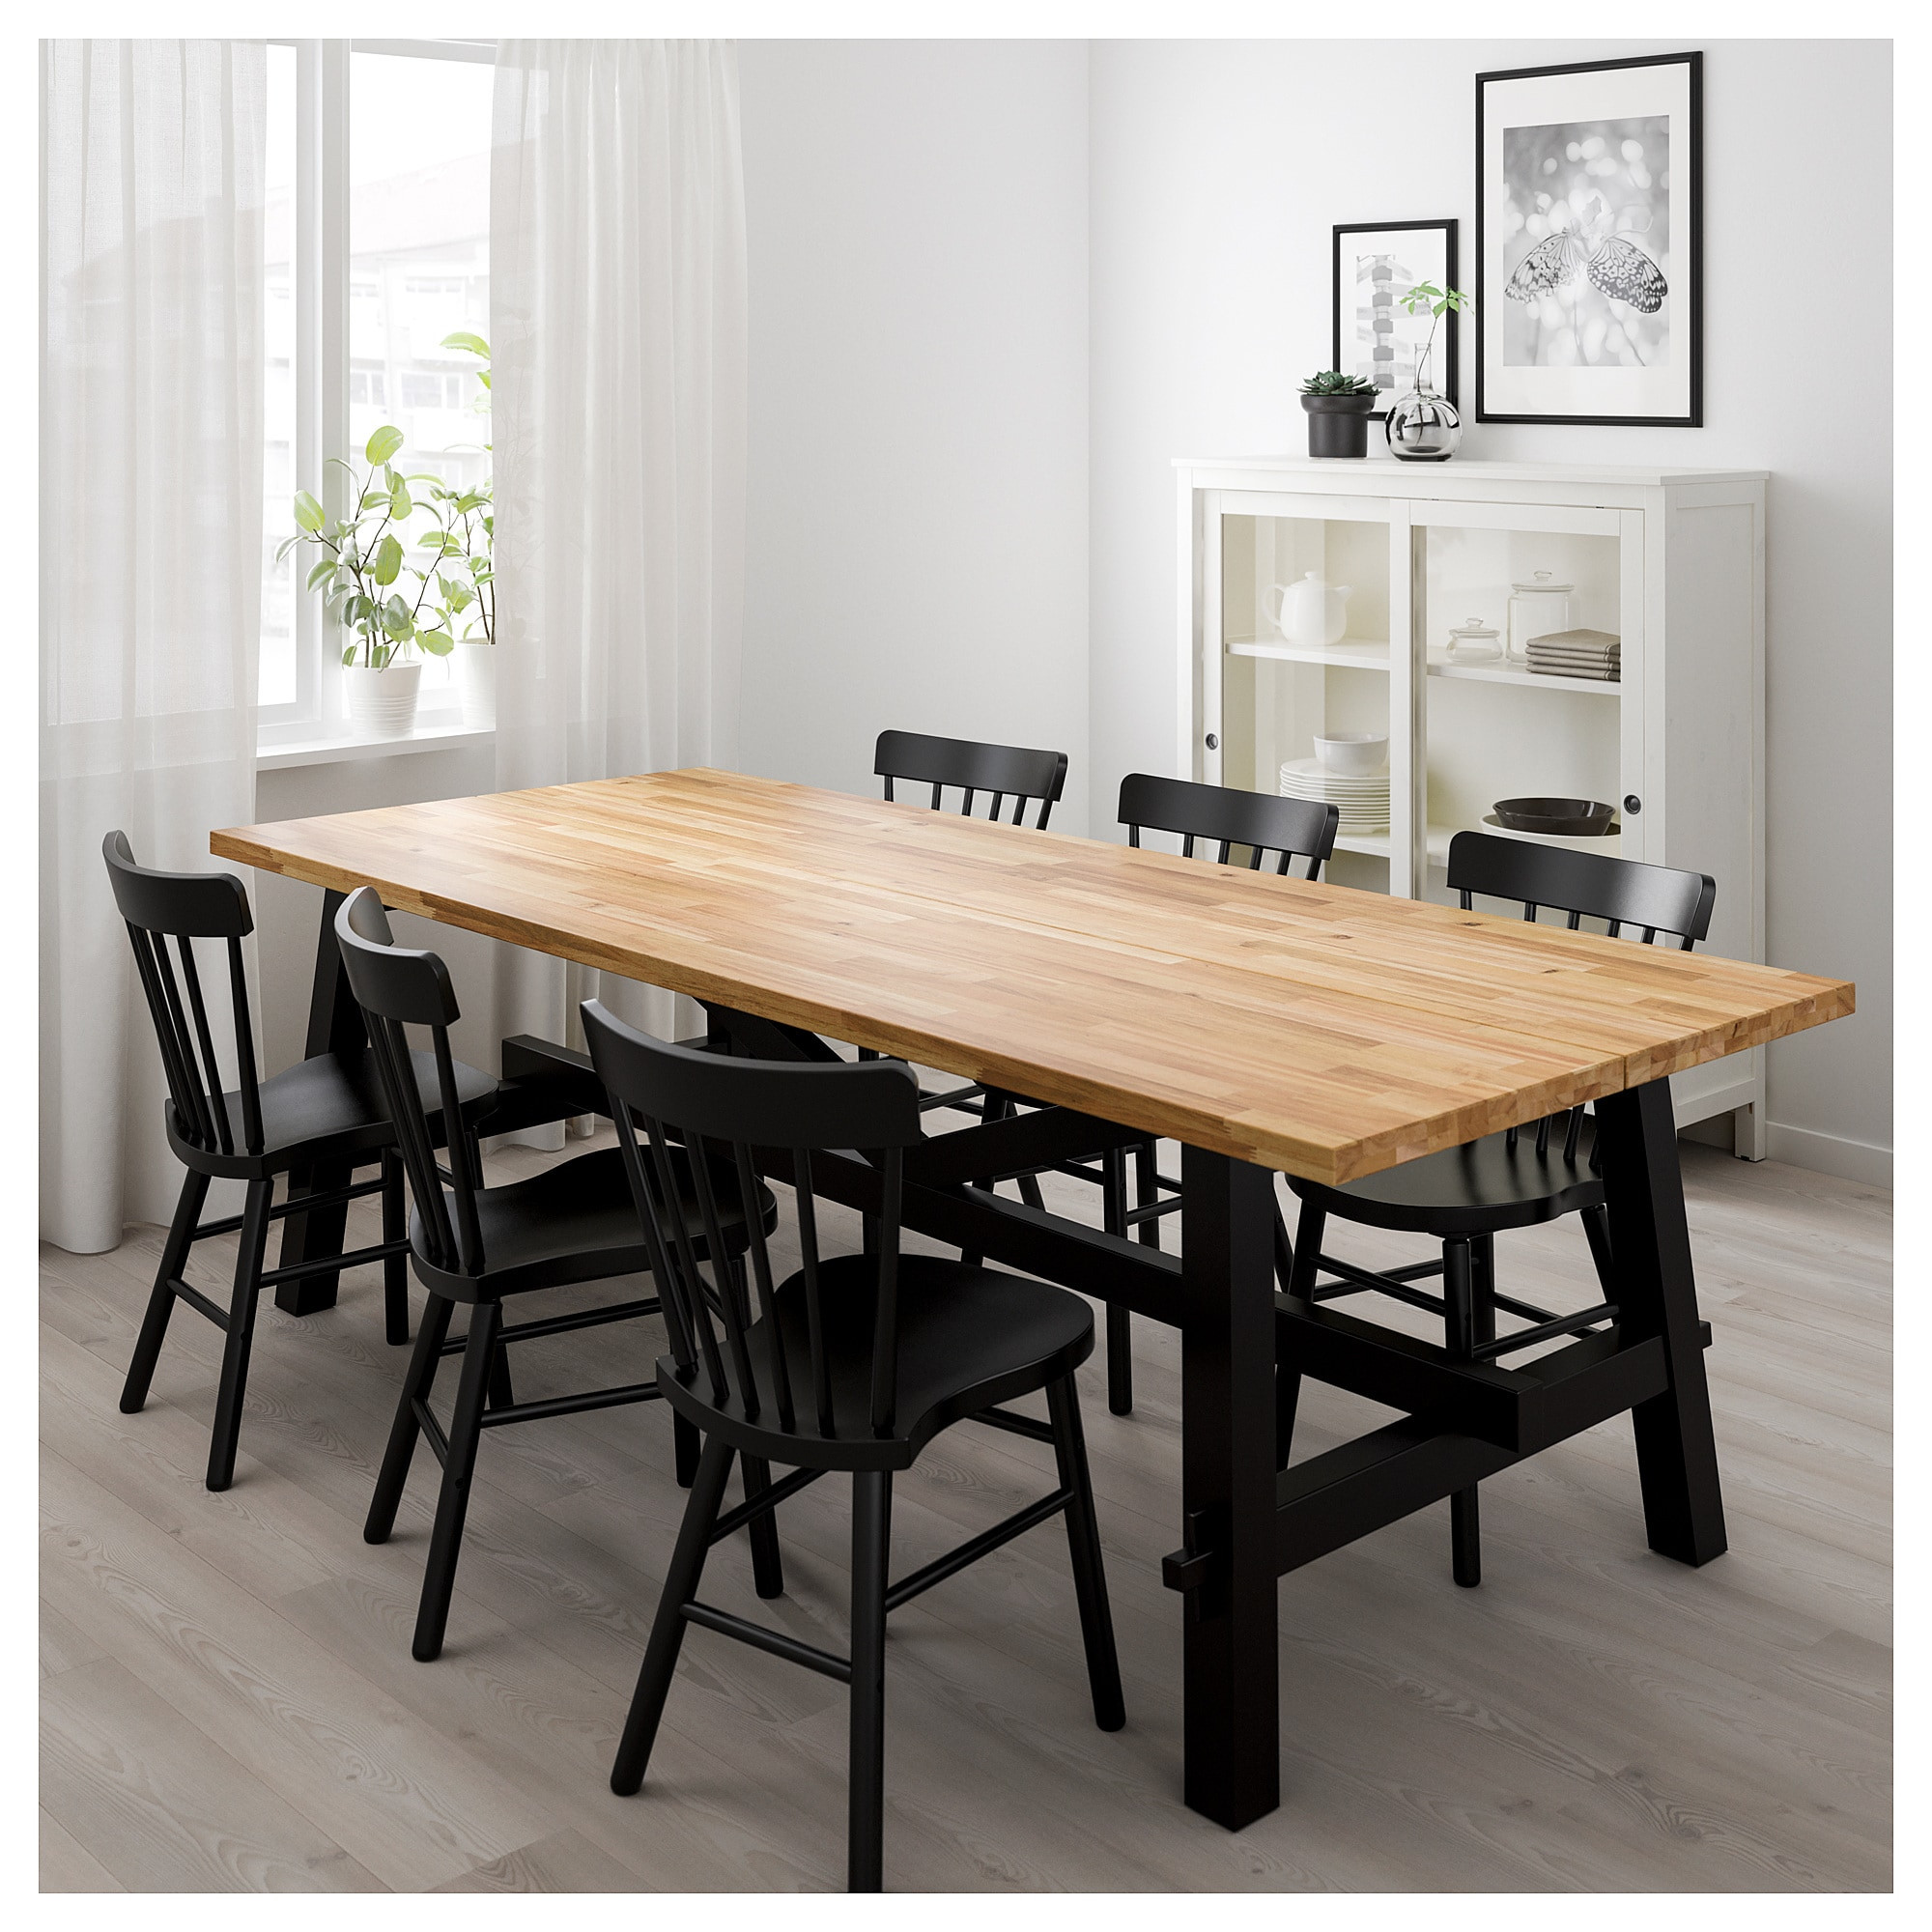 Best ideas about Ikea Dining Table . Save or Pin SKOGSTA Dining table Acacia 235 x 100 cm IKEA Now.